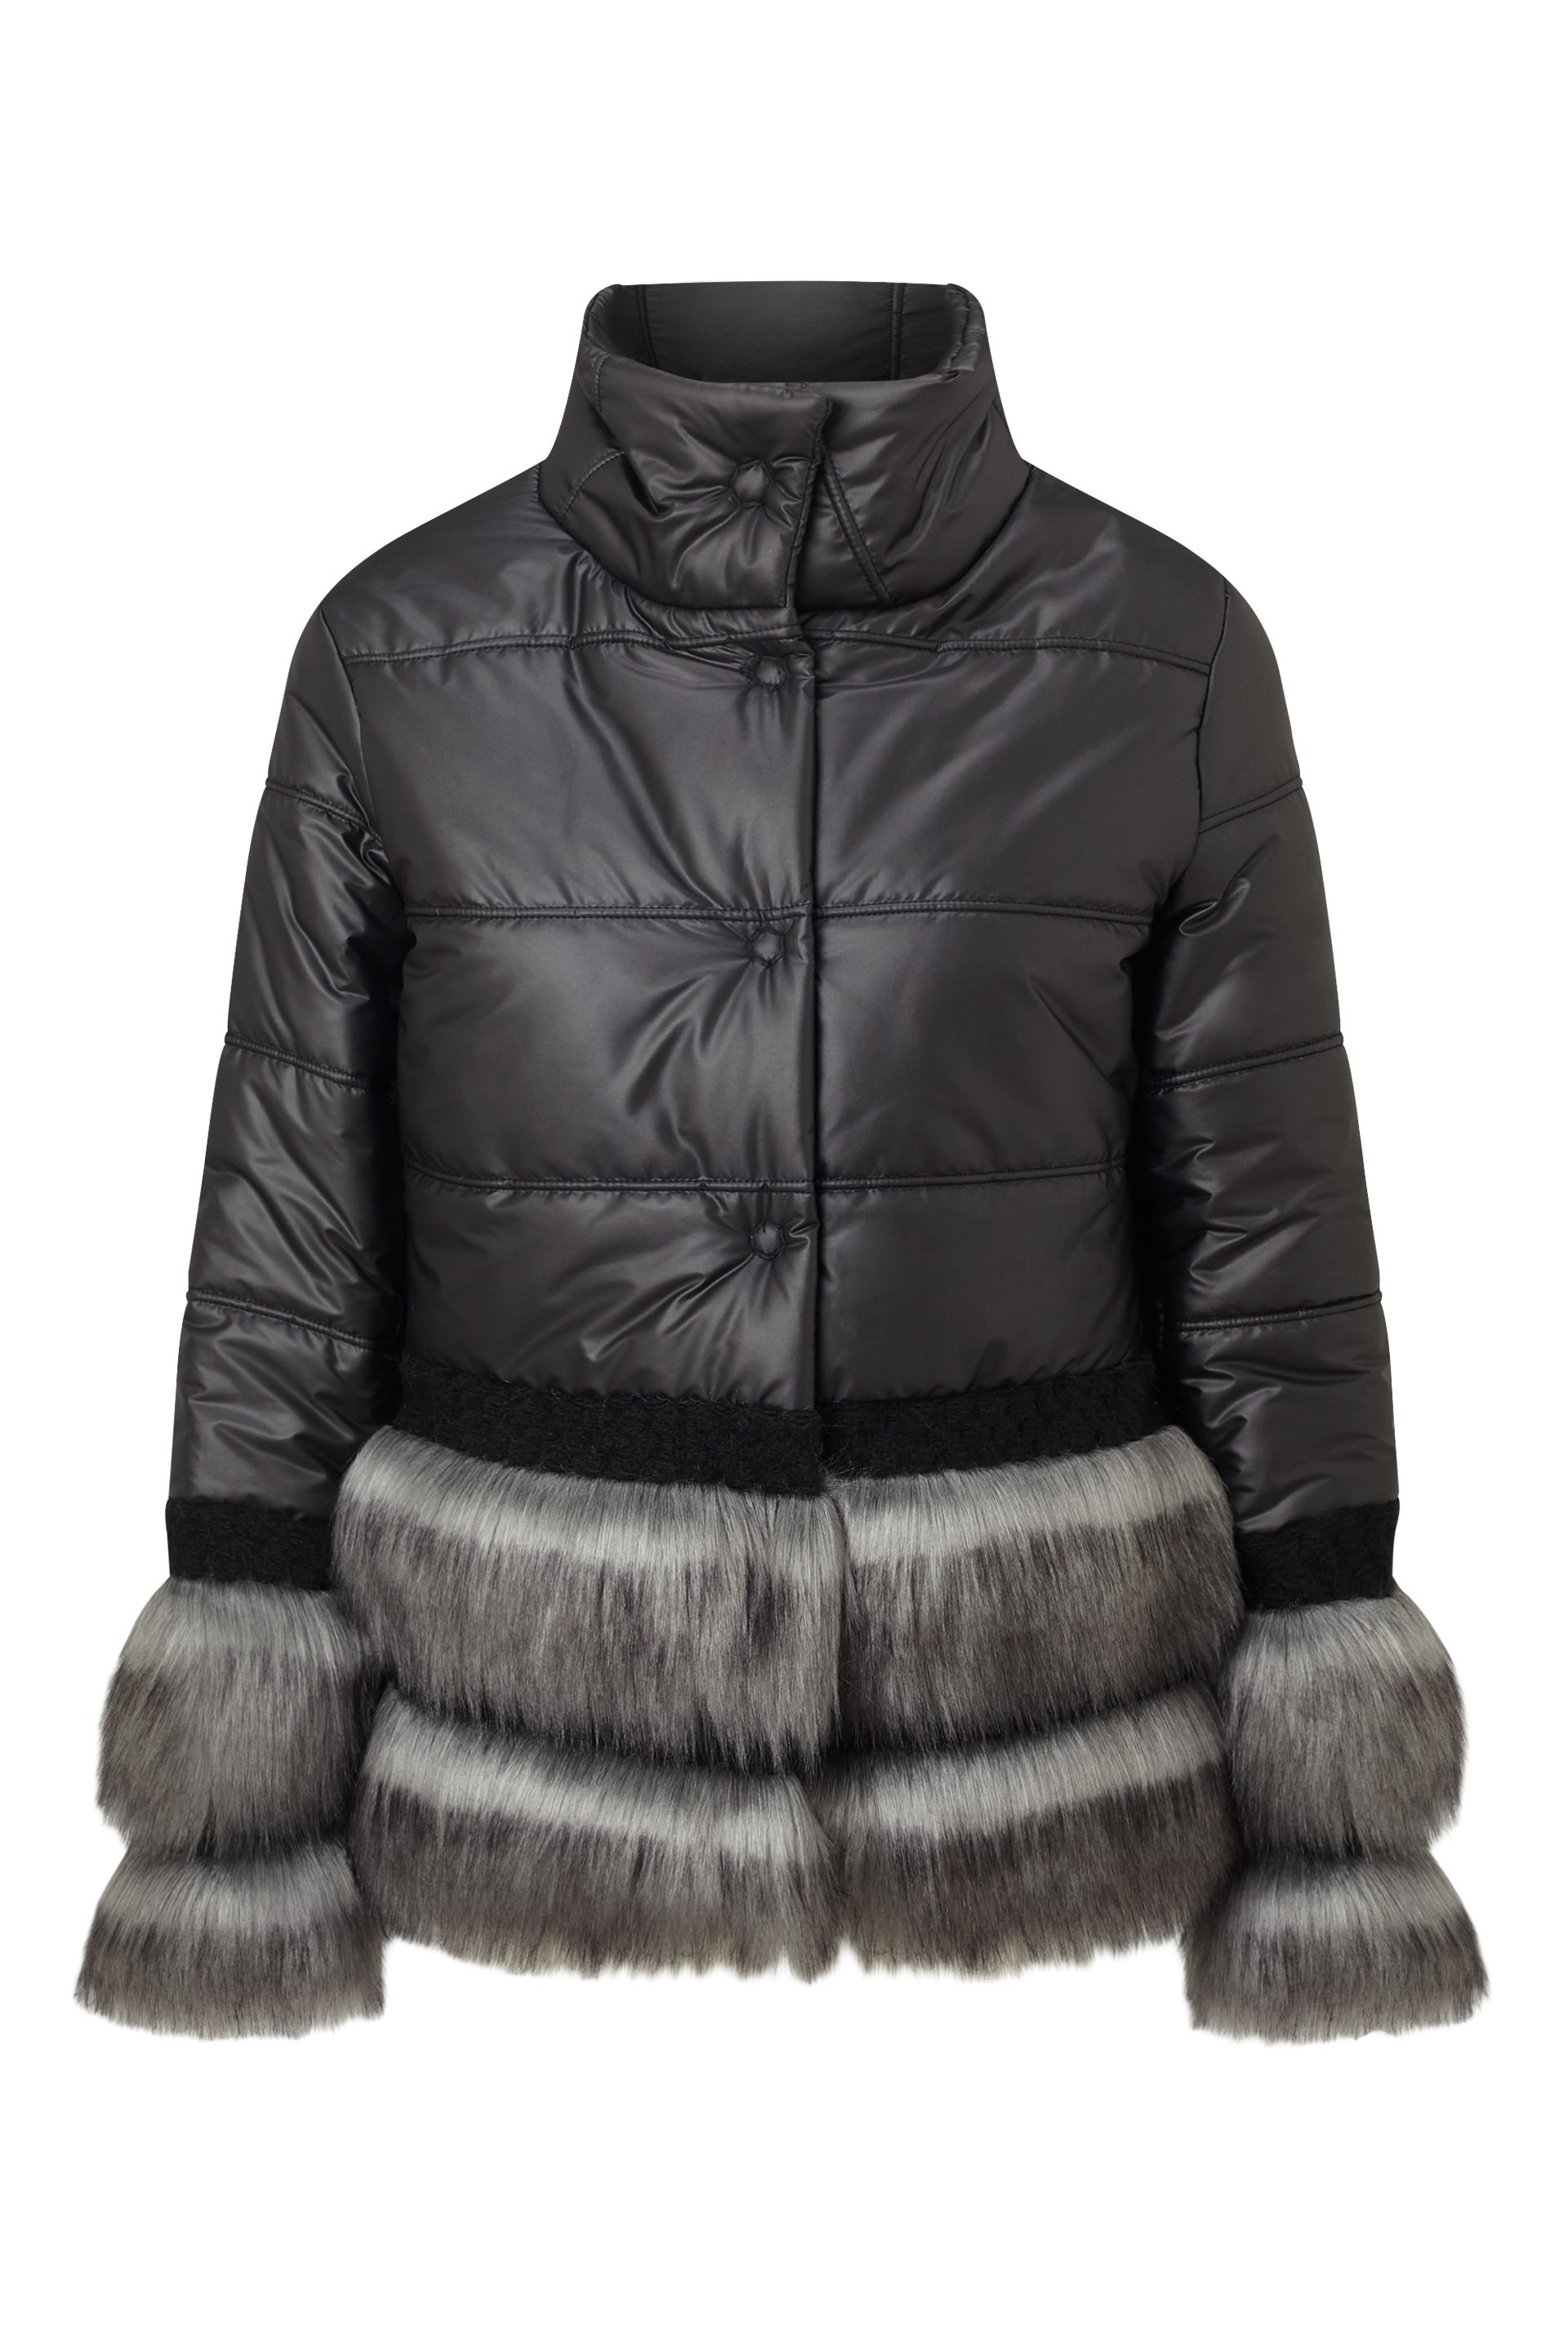 James Lakeland Faux Fur Puffer Coat, Black